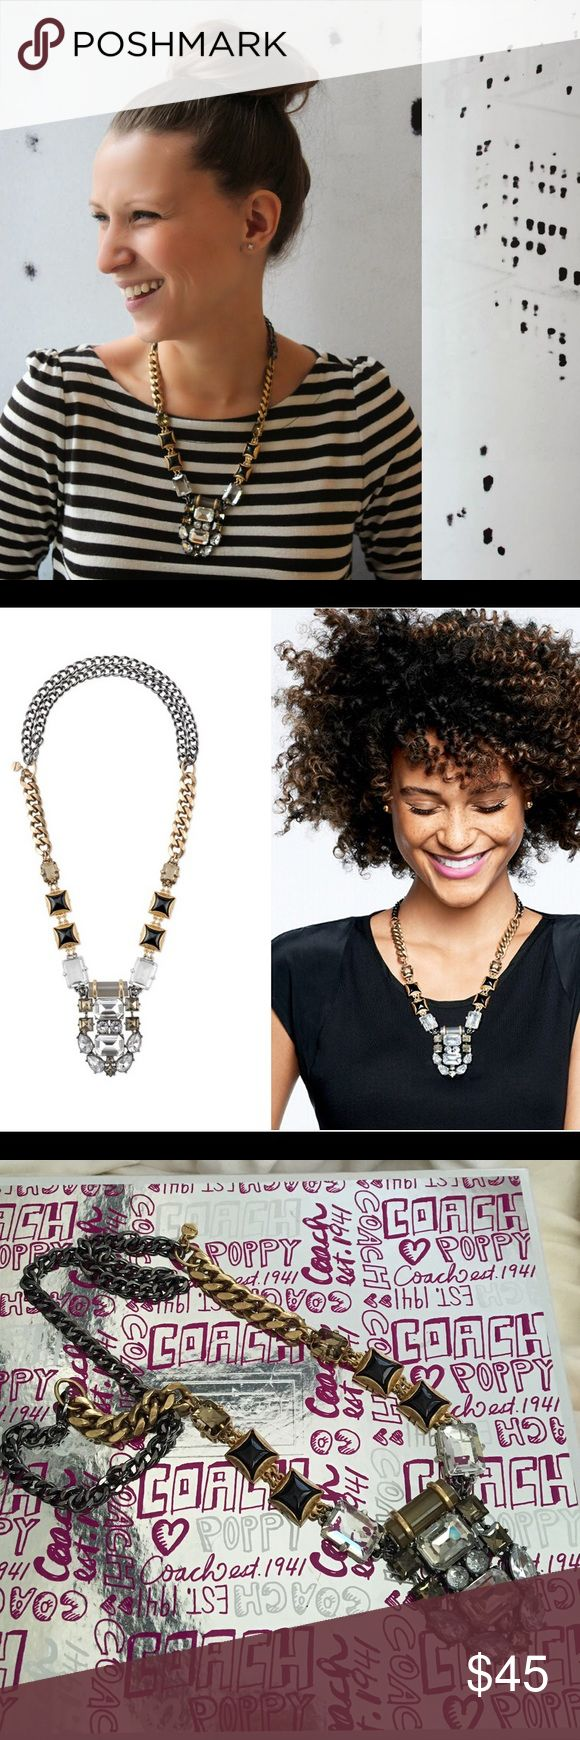 Stella and Dot necklace Great piece! Used maybe three times or less. Sanitized. Stella & Dot Jewelry Necklaces